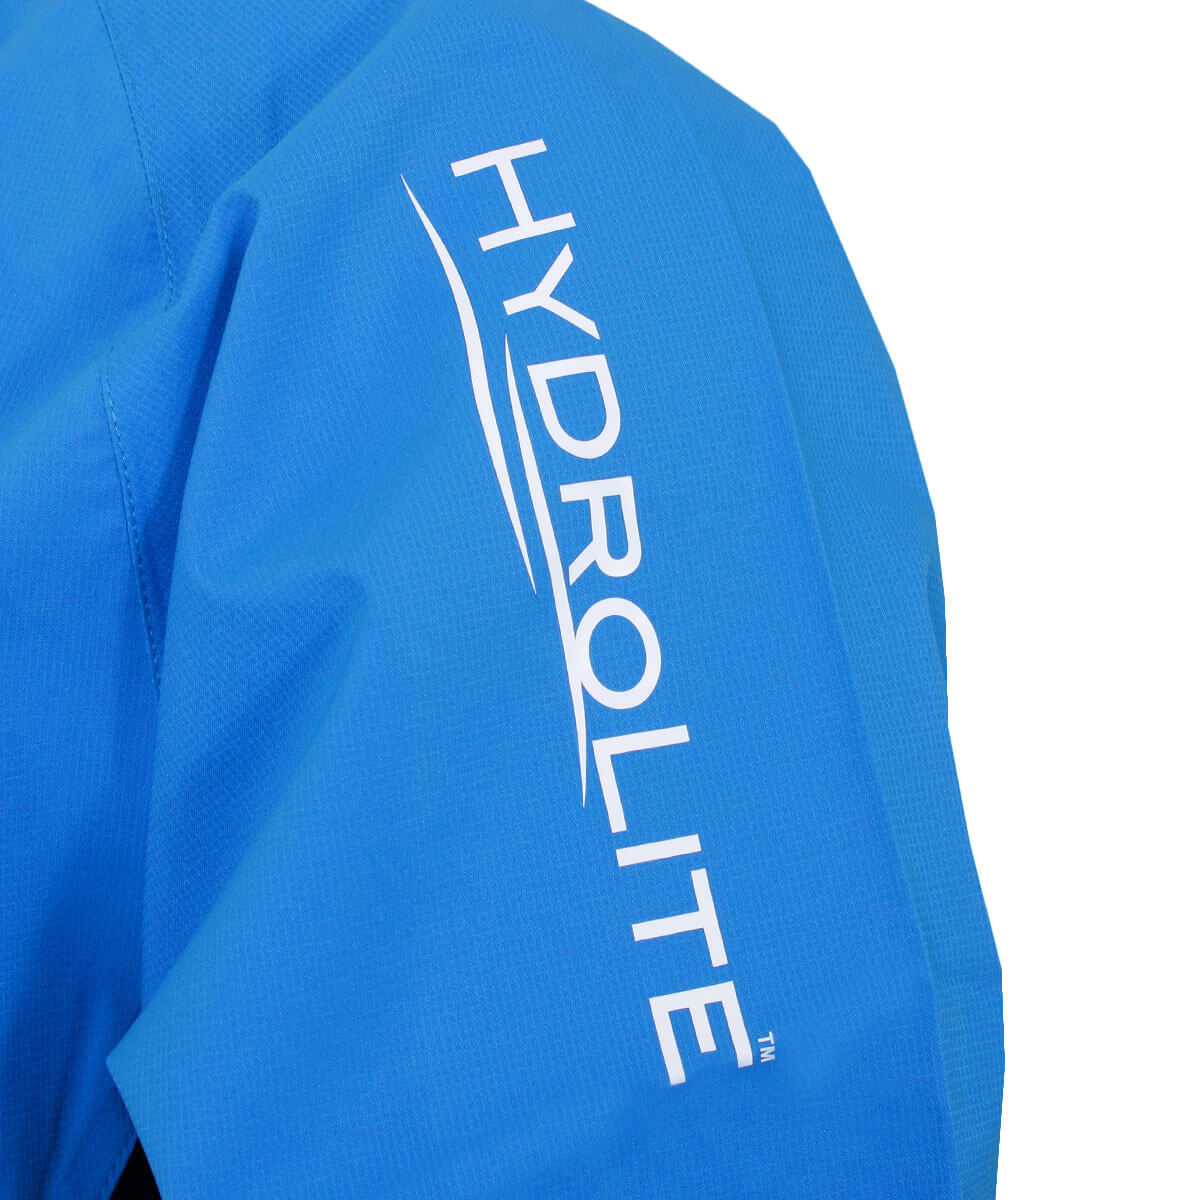 Footjoy-Mens-Hydrolite-Rain-Waterproof-Lightweight-FJ-Golf-Jacket-47-OFF-RRP thumbnail 9